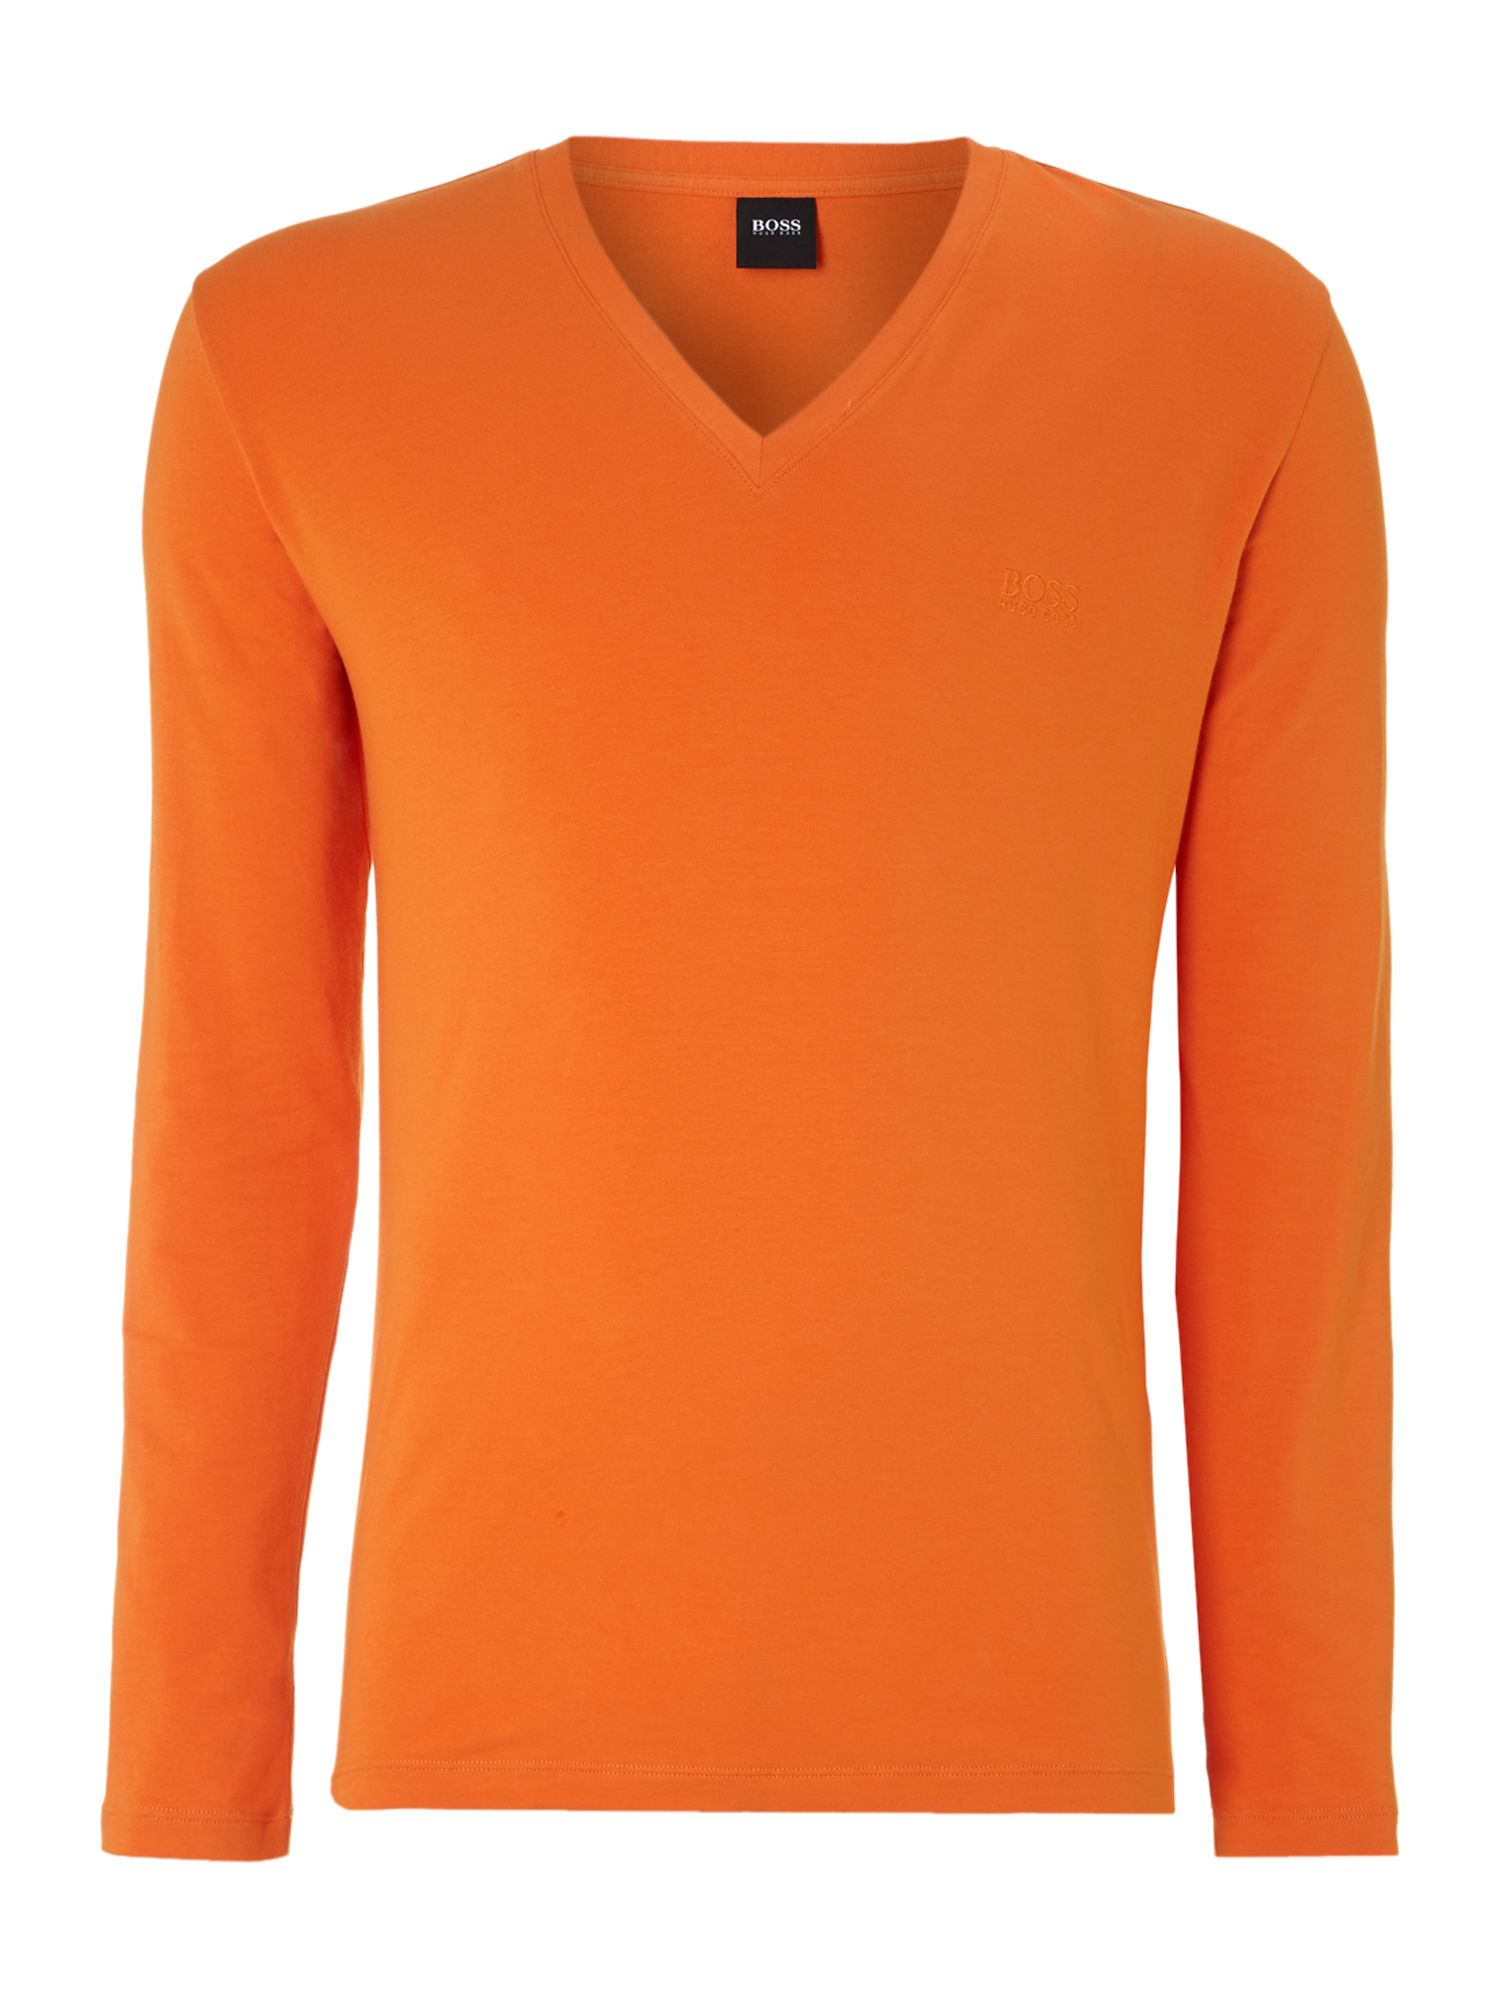 Long sleeved v neck tshirt